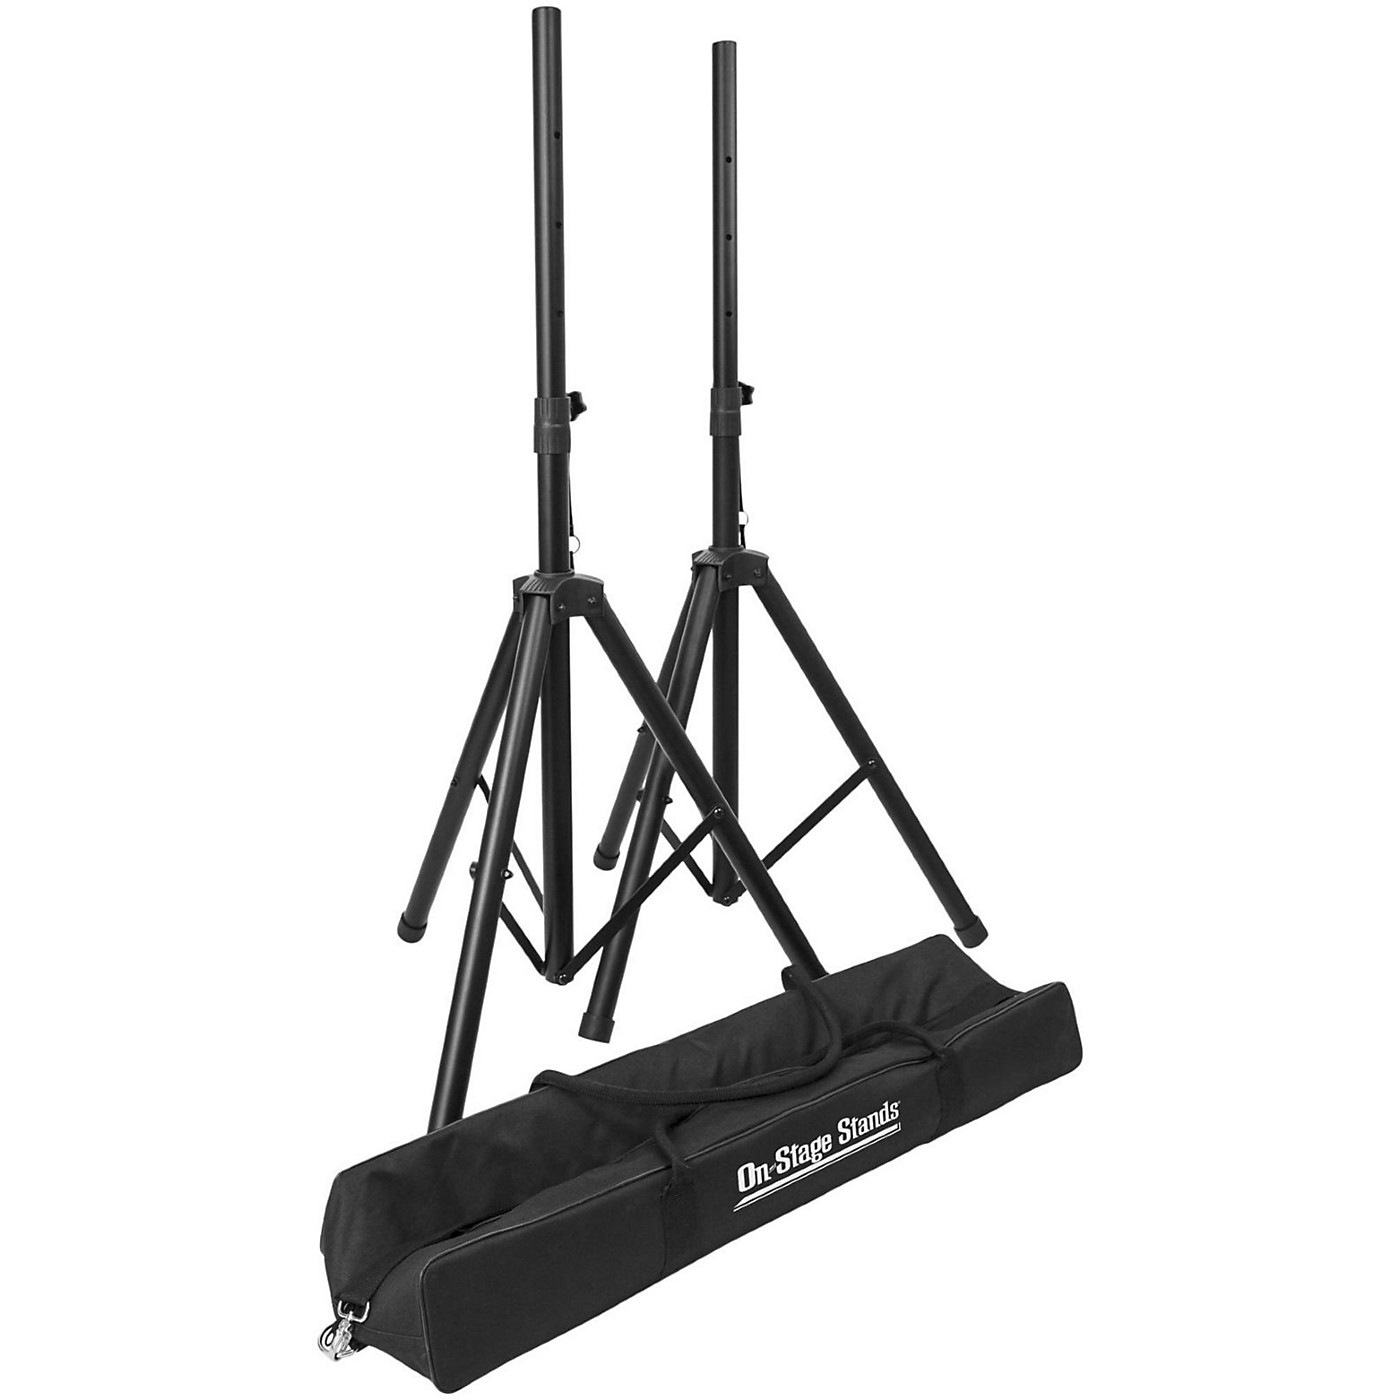 On-Stage Compact Speaker Stand Pack thumbnail